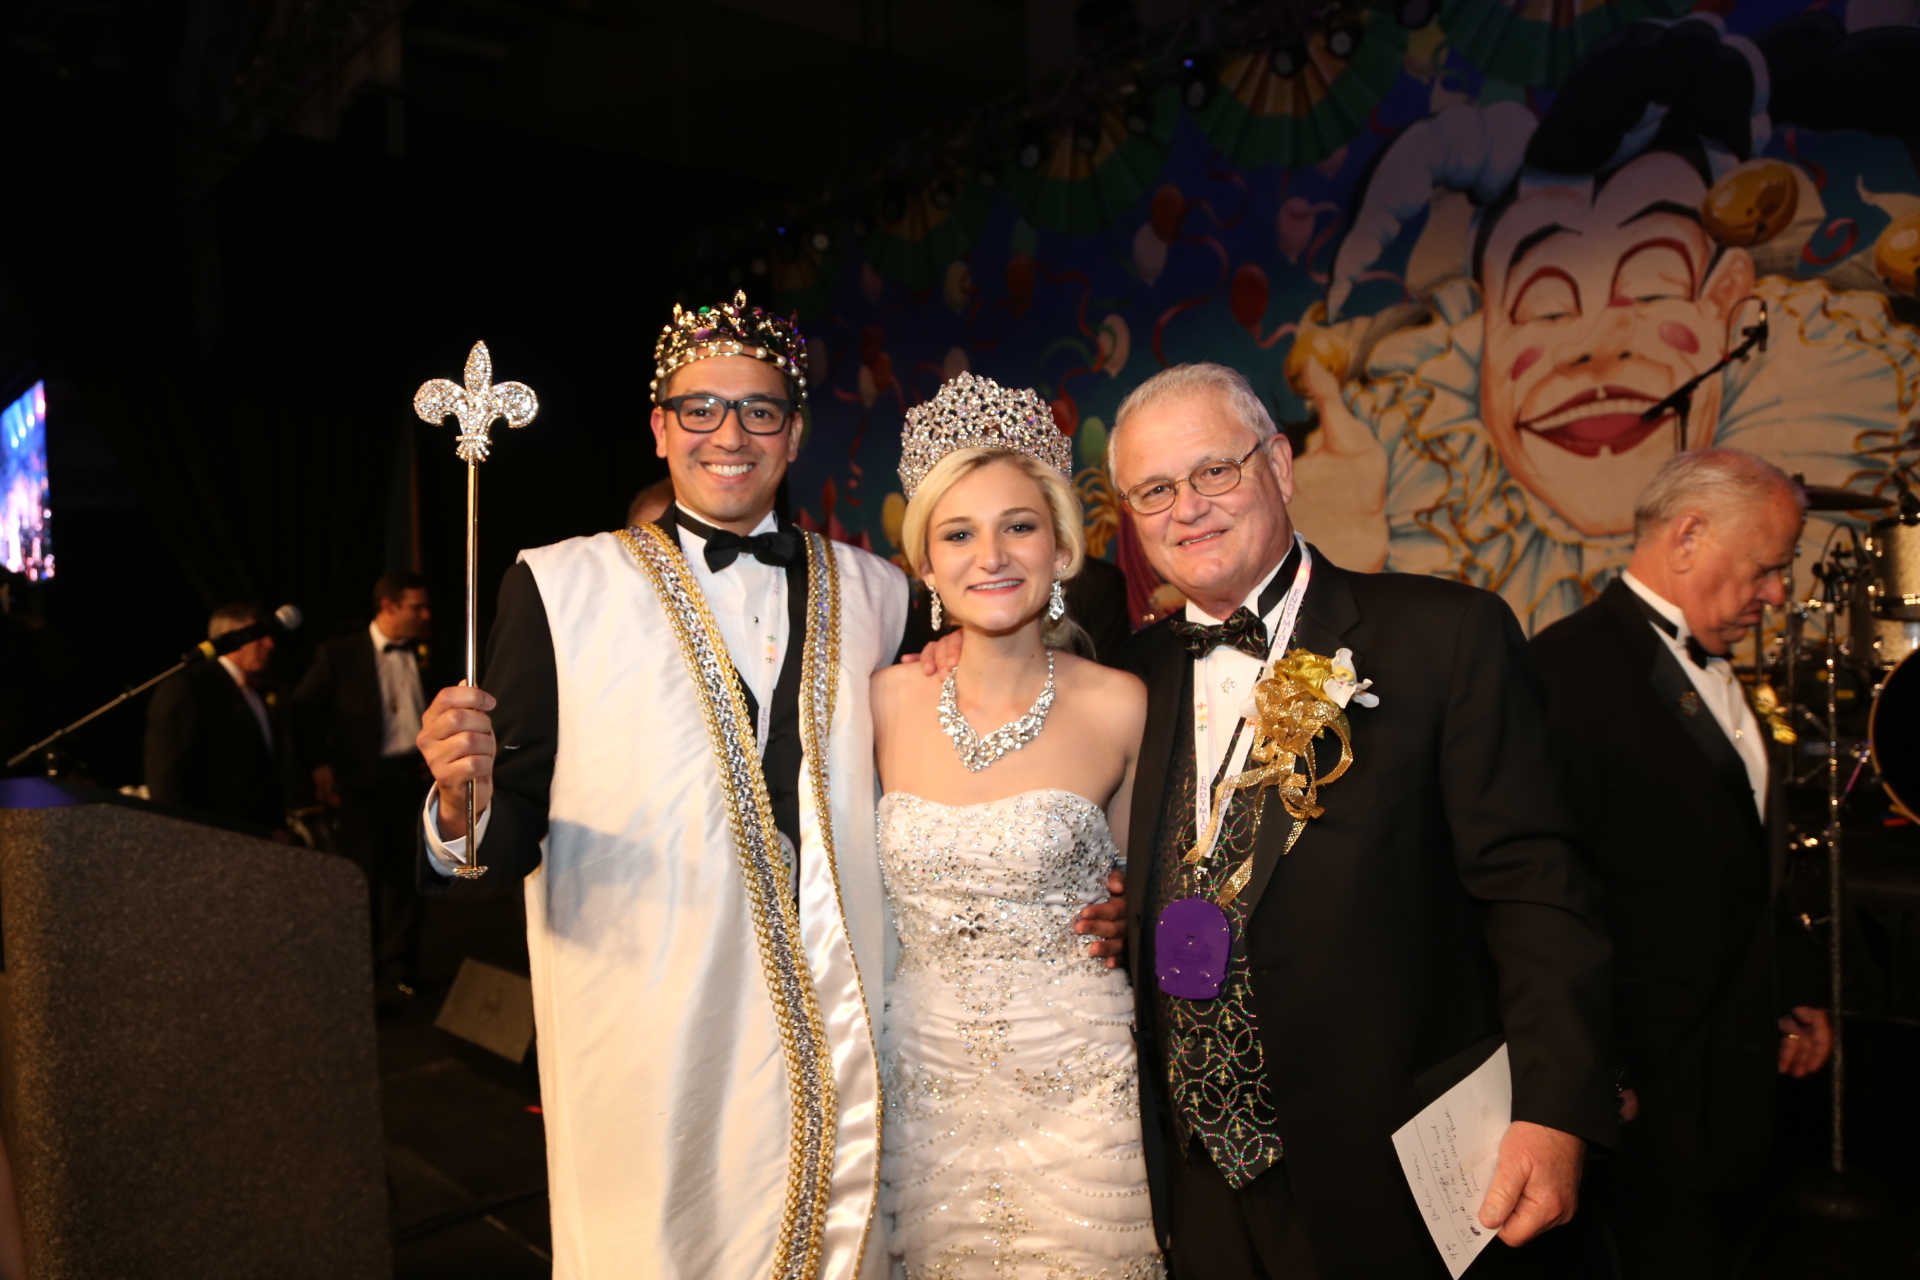 Endymion Coronation Ball 2016